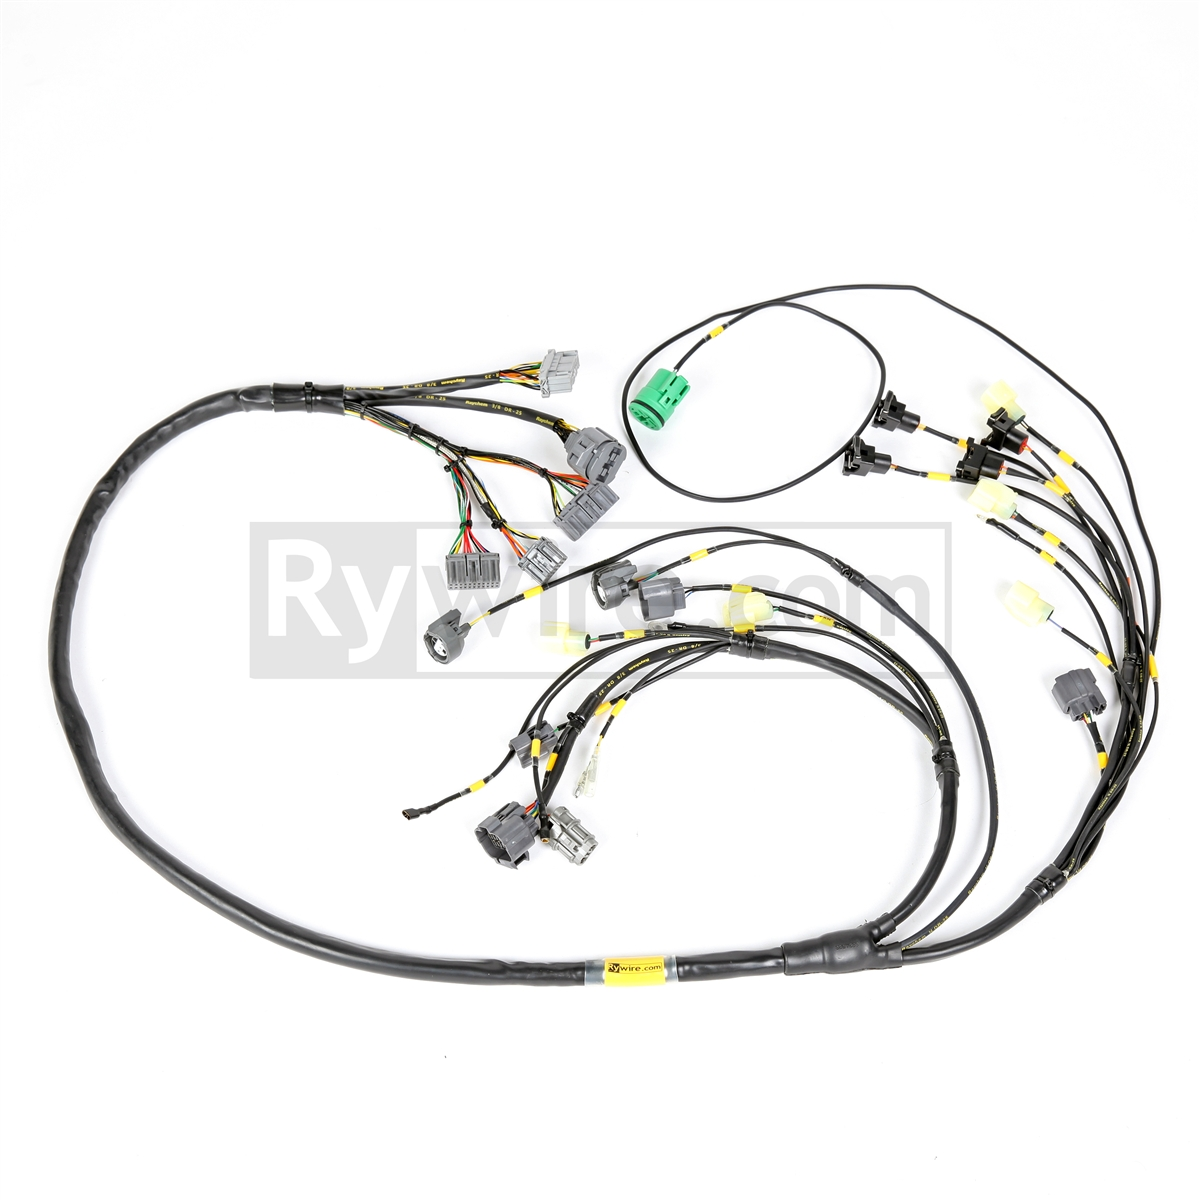 custom honda civic wiring harness wiring library Honda Civic Solenoid custom honda civic wiring harness